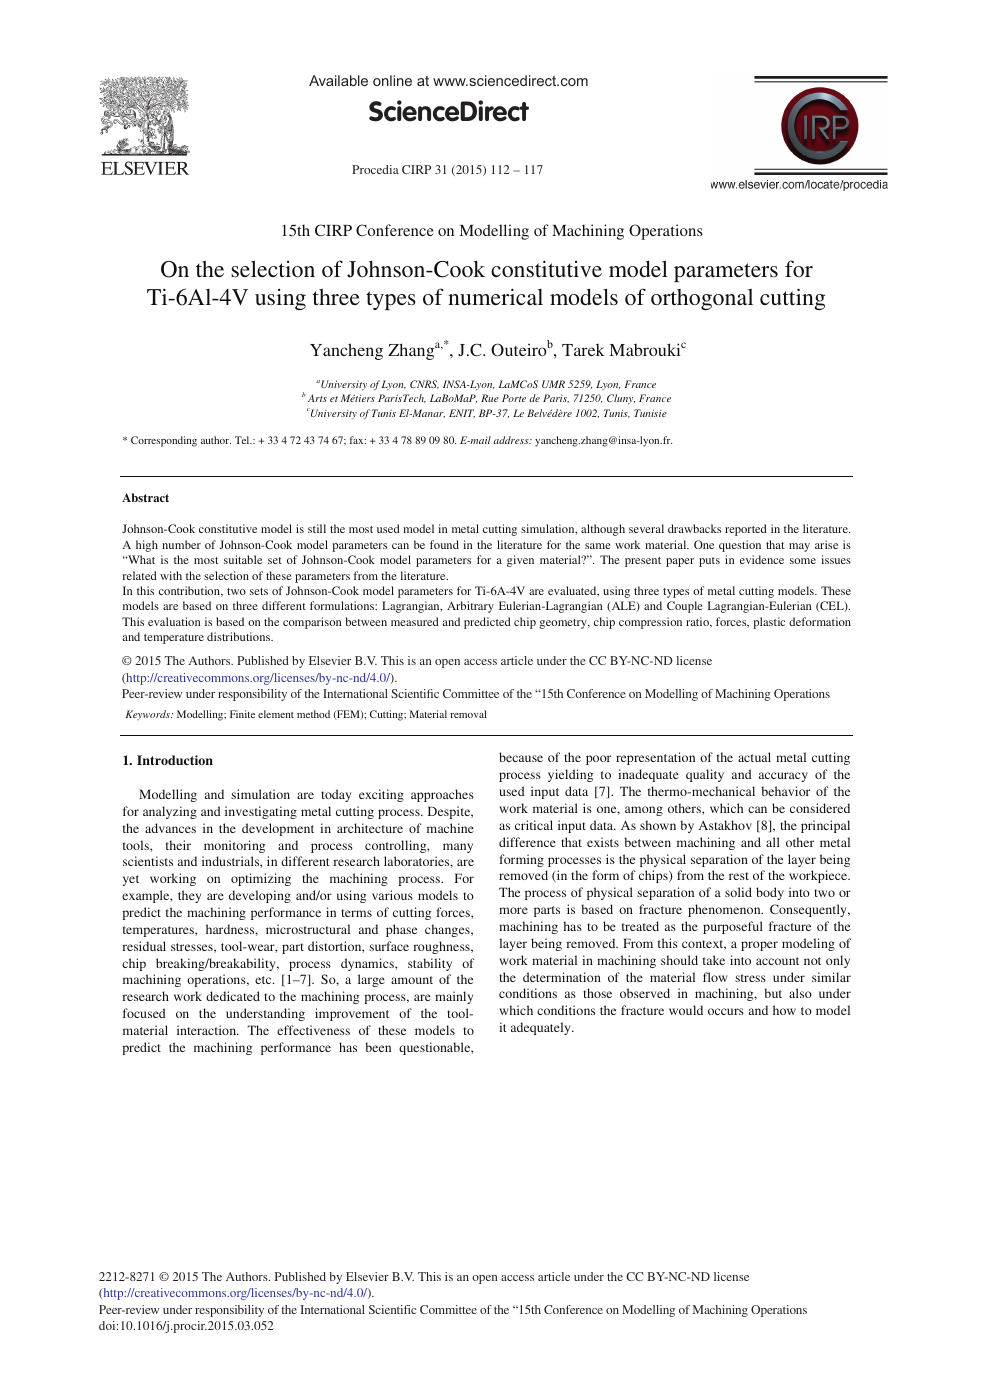 On the Selection of Johnson-cook Constitutive Model Parameters for